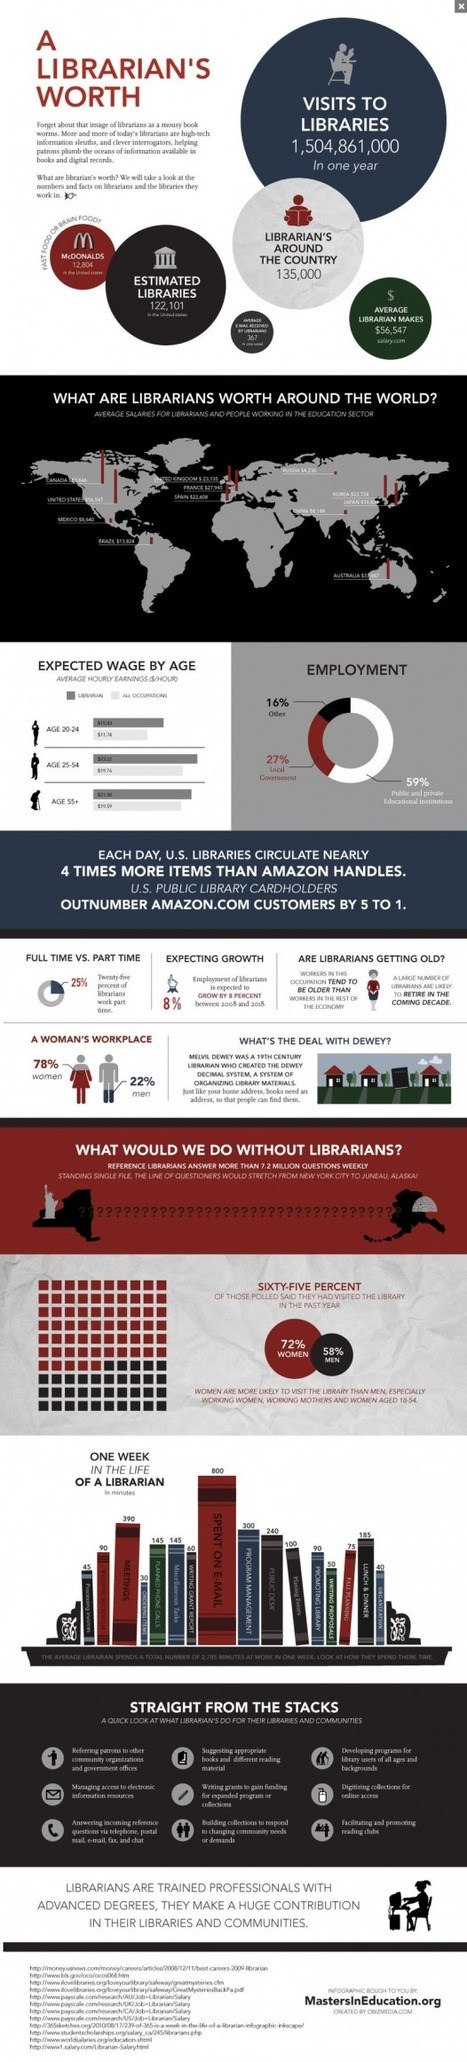 What are librarians worth around the world | Livres etc | Scoop.it